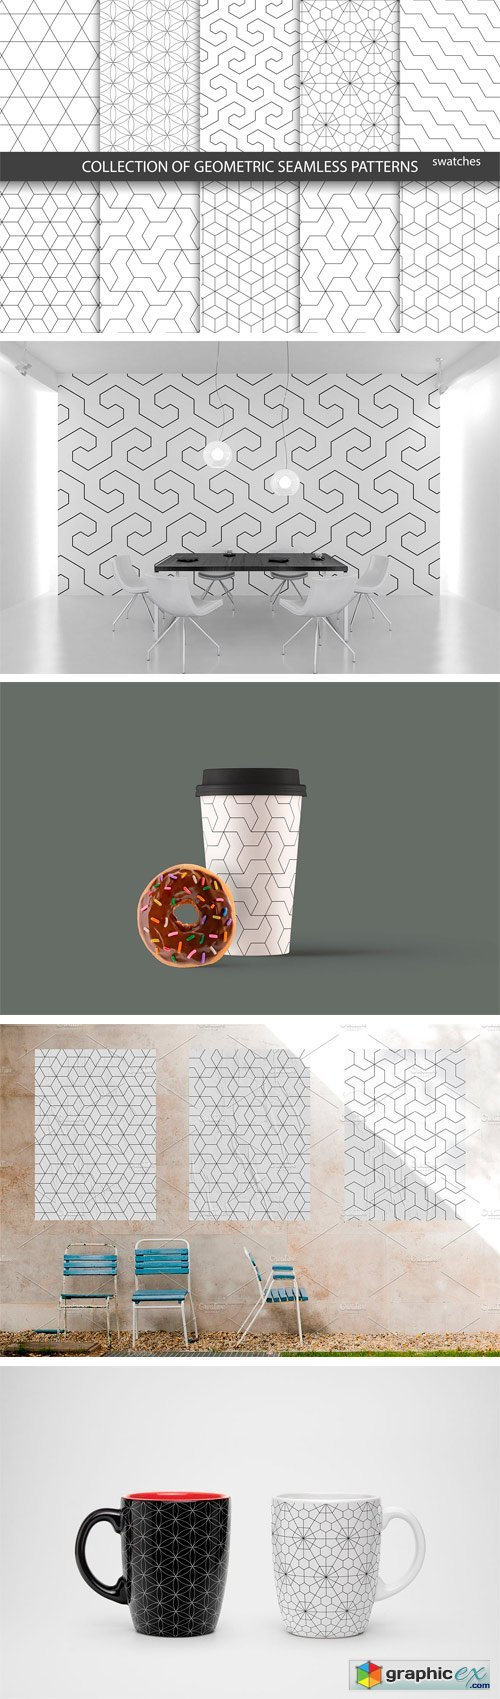 Ornamental Geometric Patterns